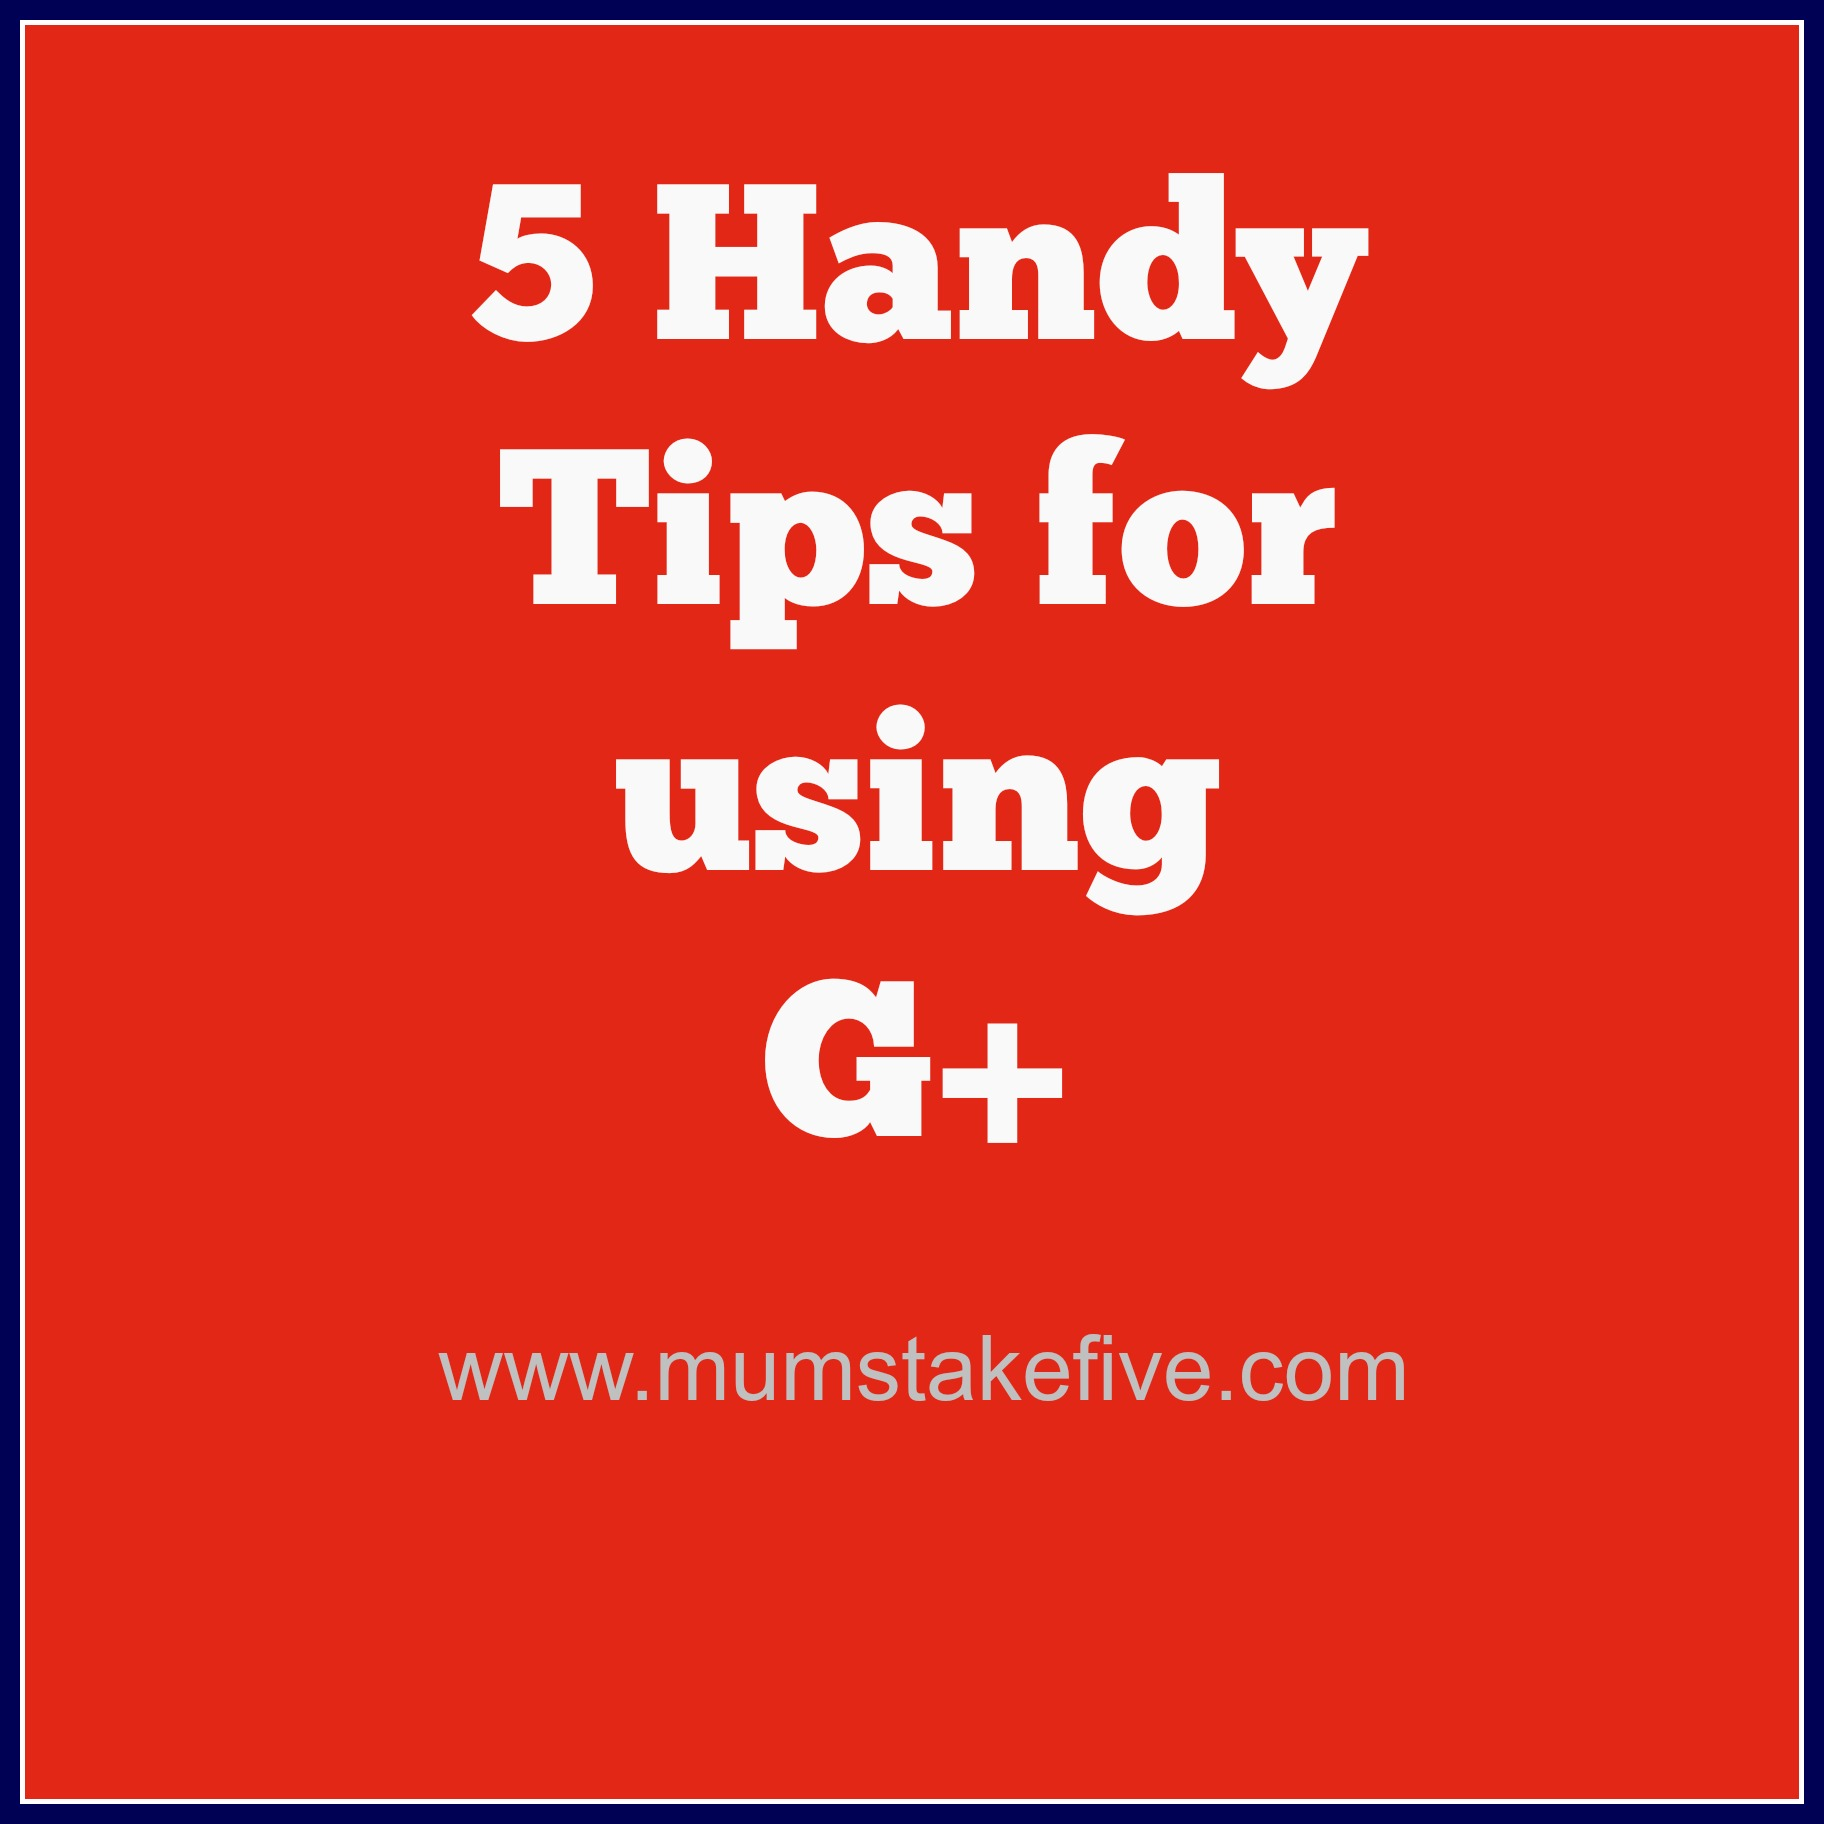 G+ Google Plus Page tips  Tips for using google plus